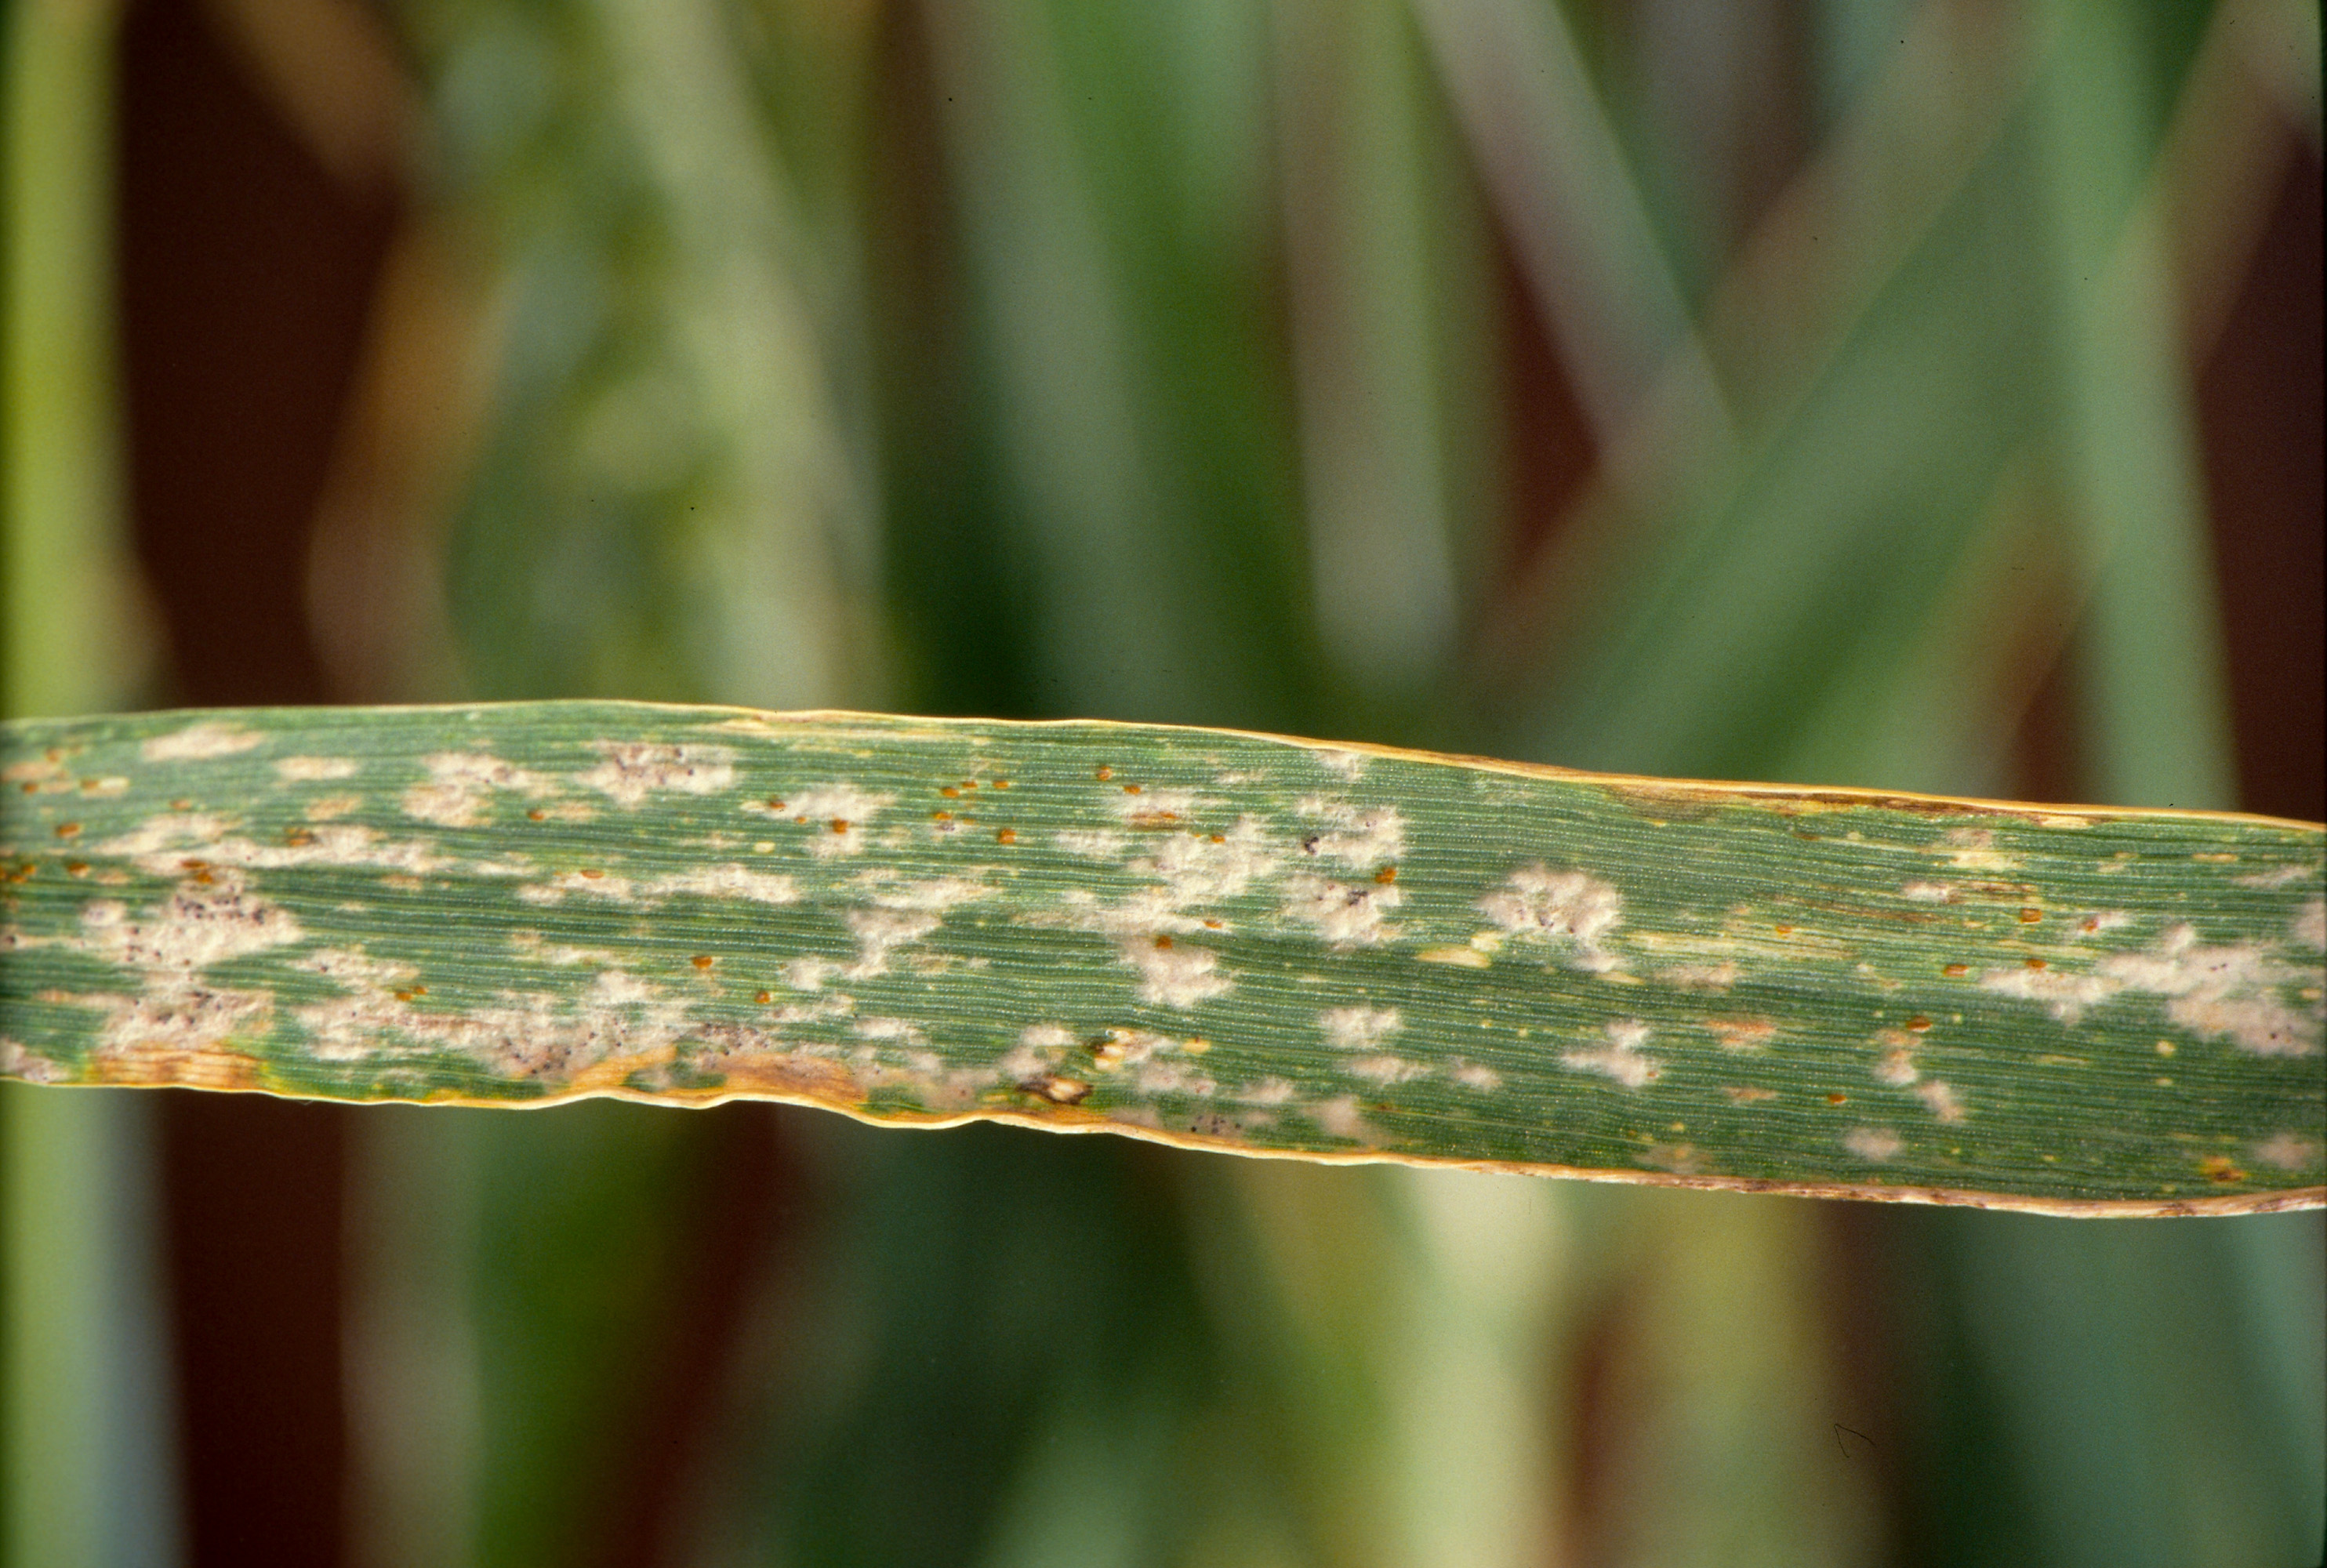 Powdery Mildew causes major yield losses in barley if infection occurs early in the season.